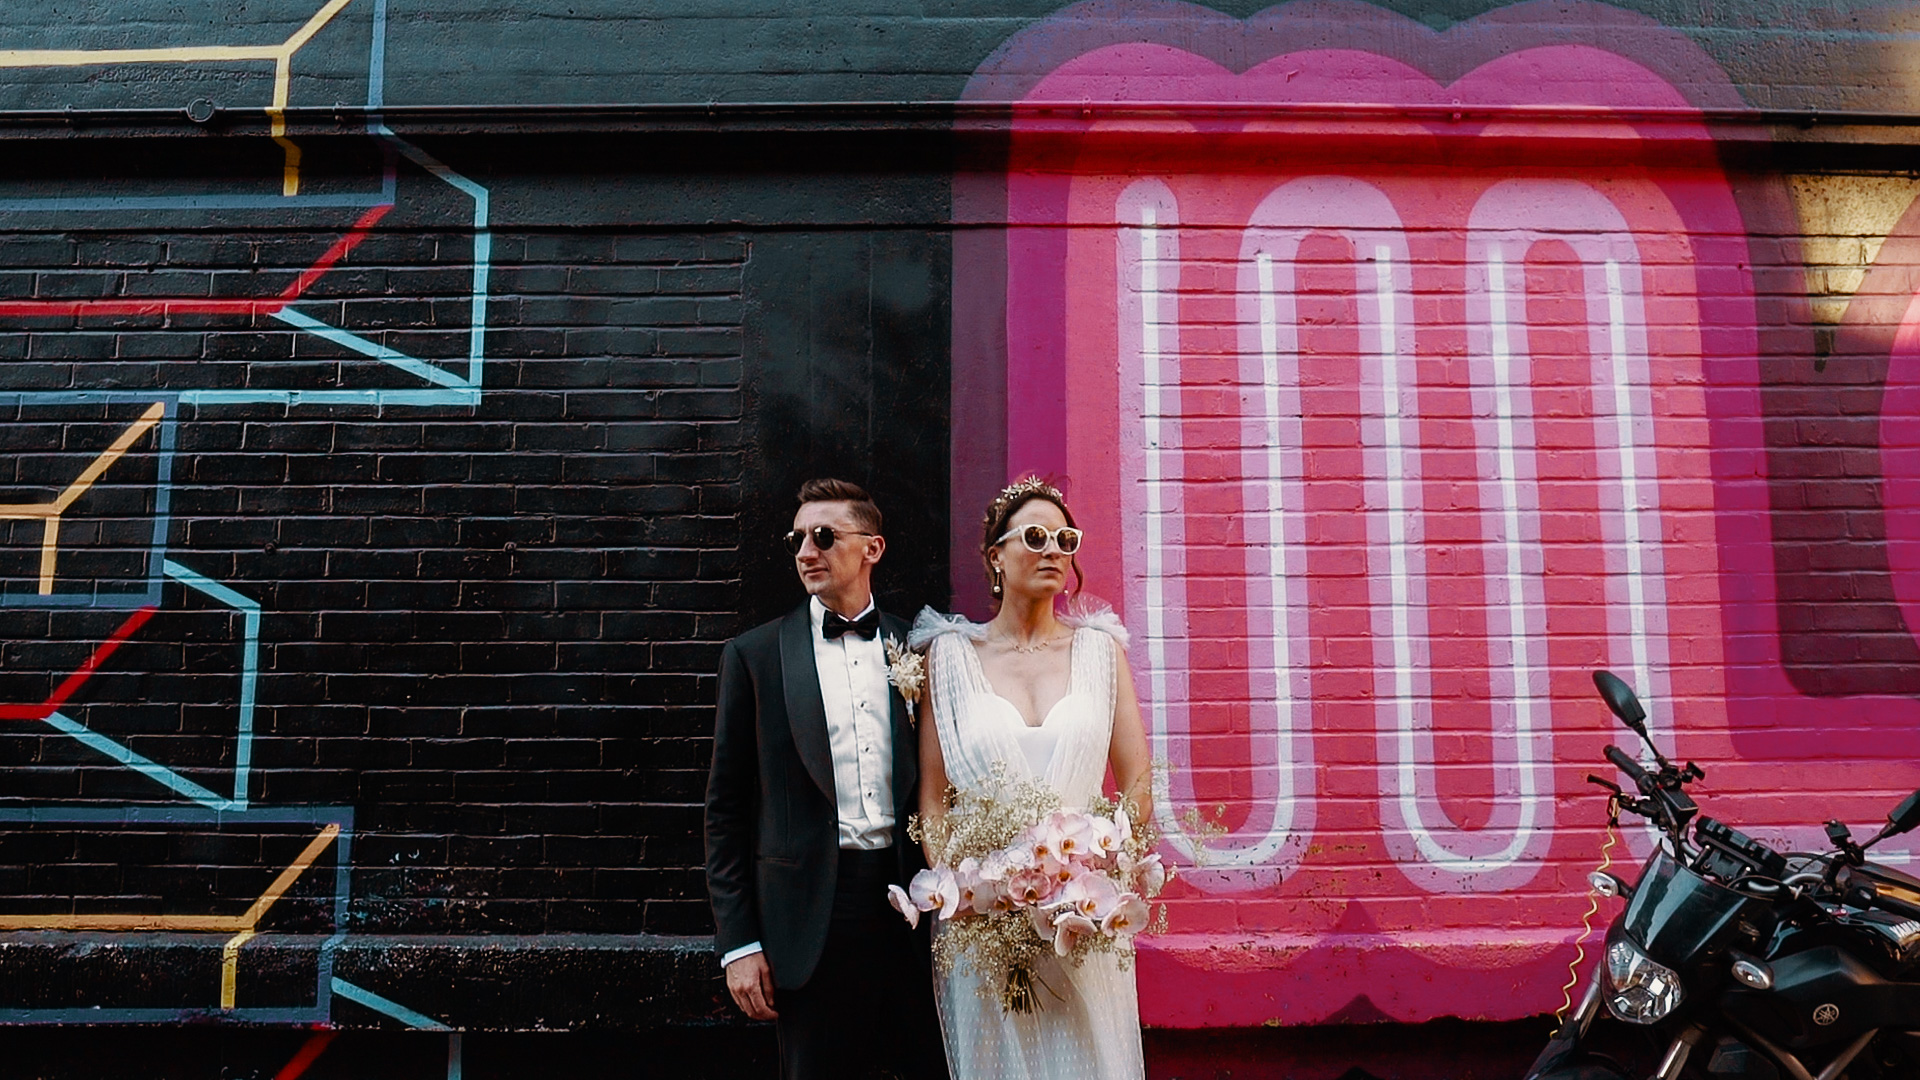 Stacey + Luke | London, United Kingdom | Ace Hotel